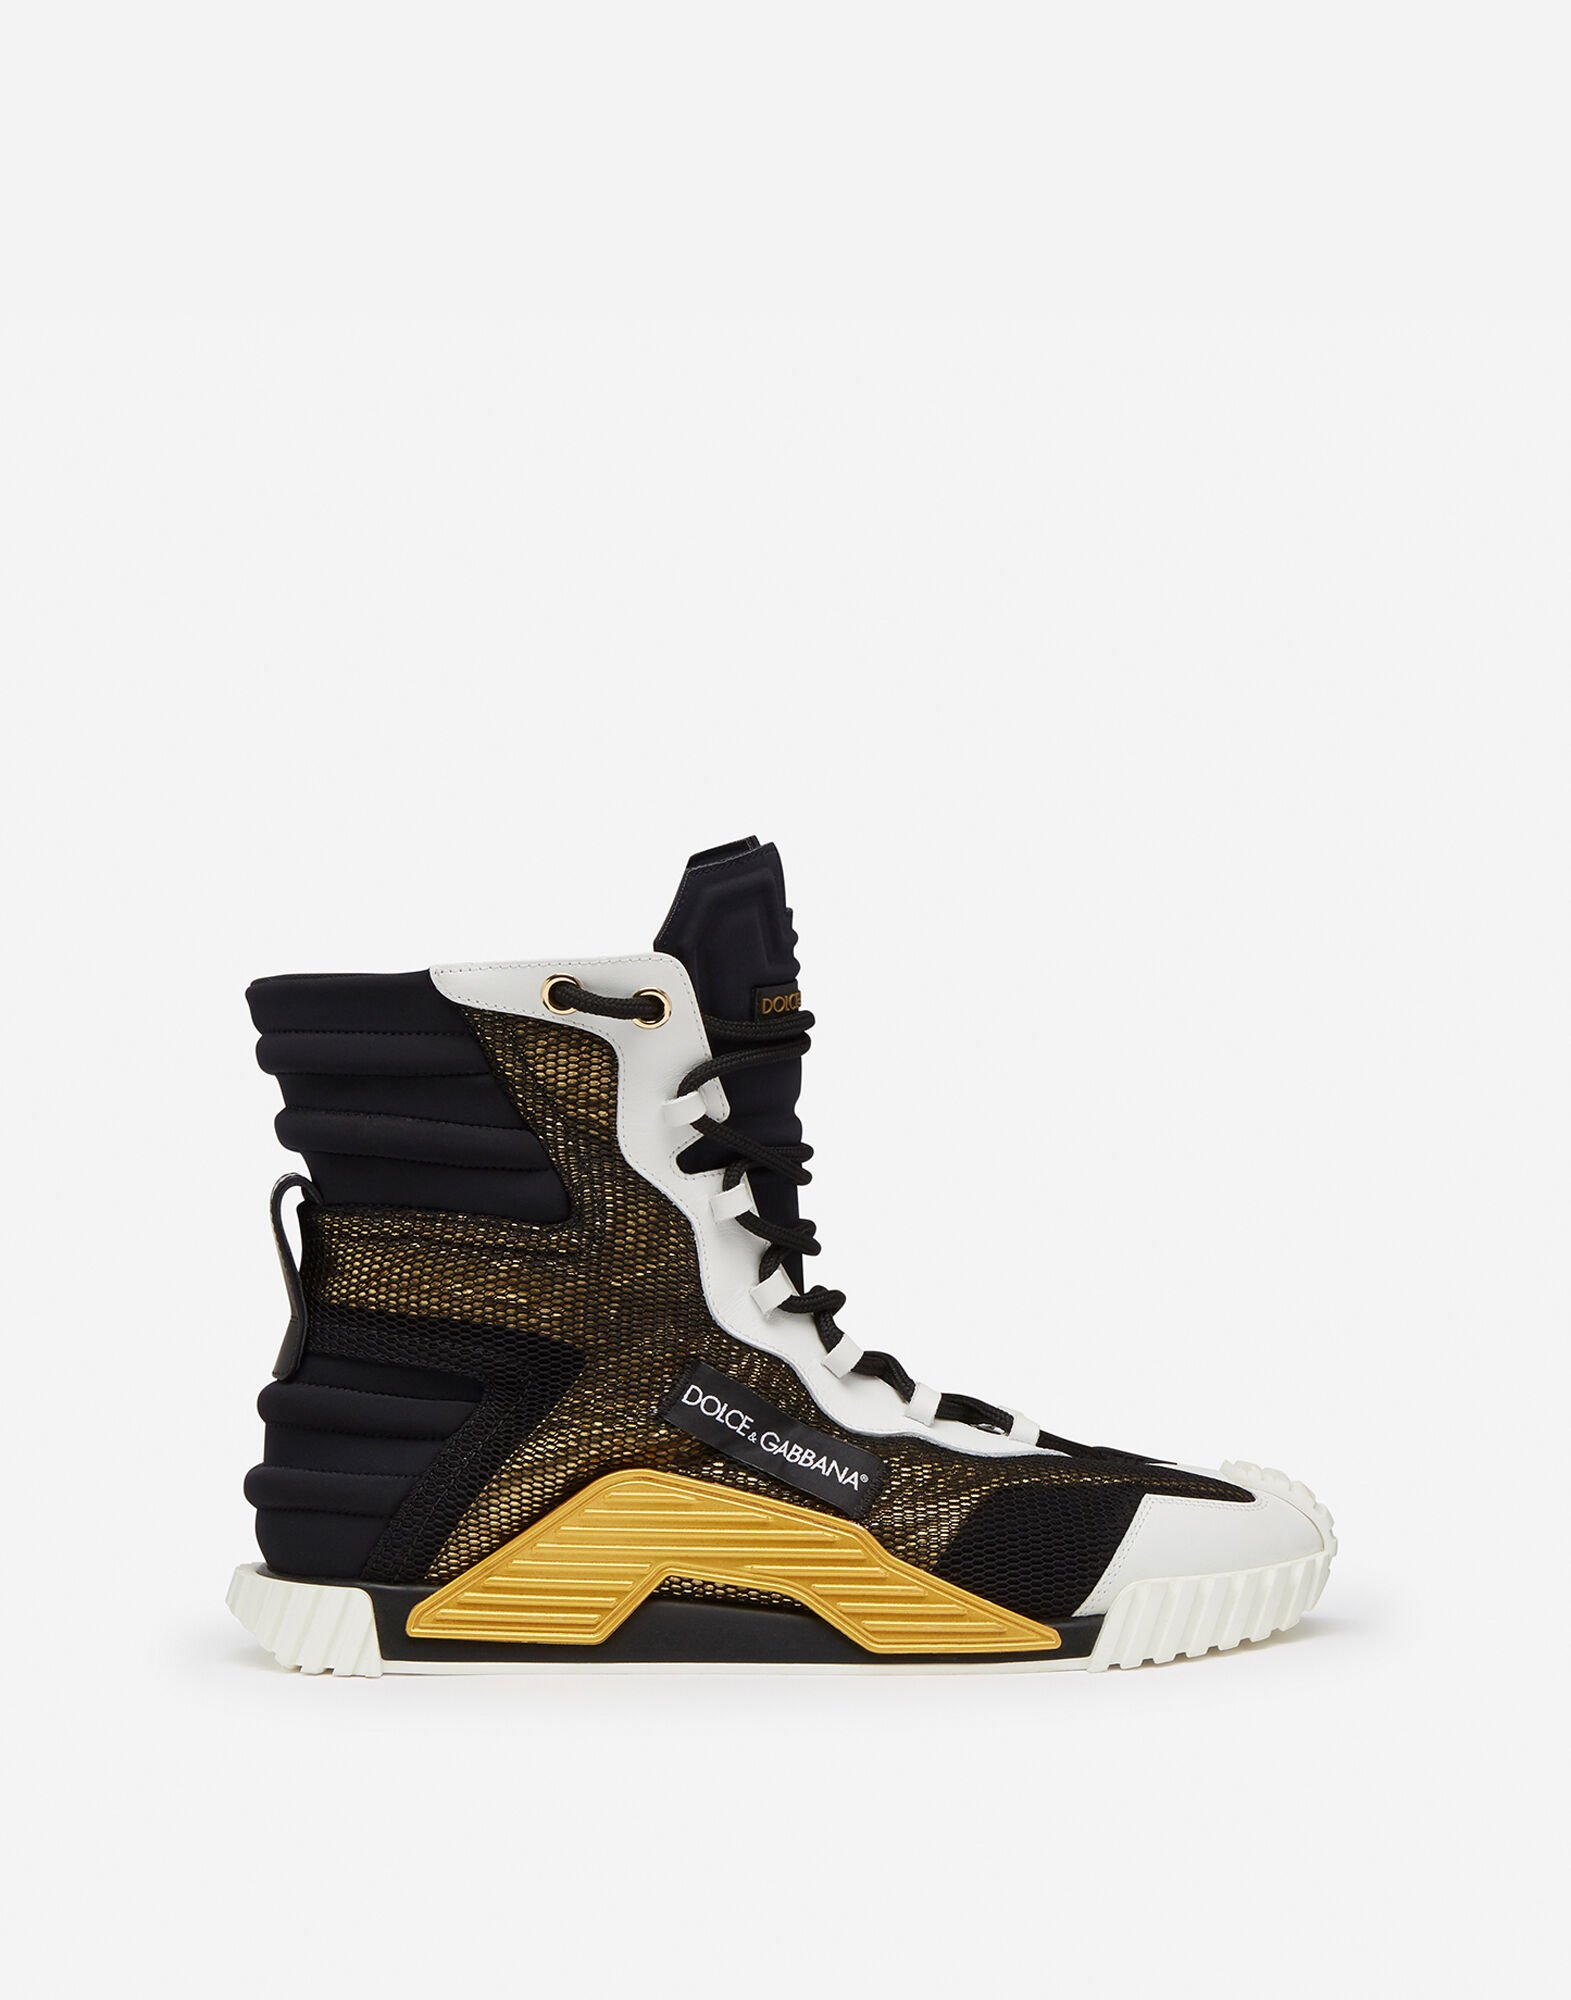 HIGH TOP NS1 SNEAKERS IN MIXED MATERIALS